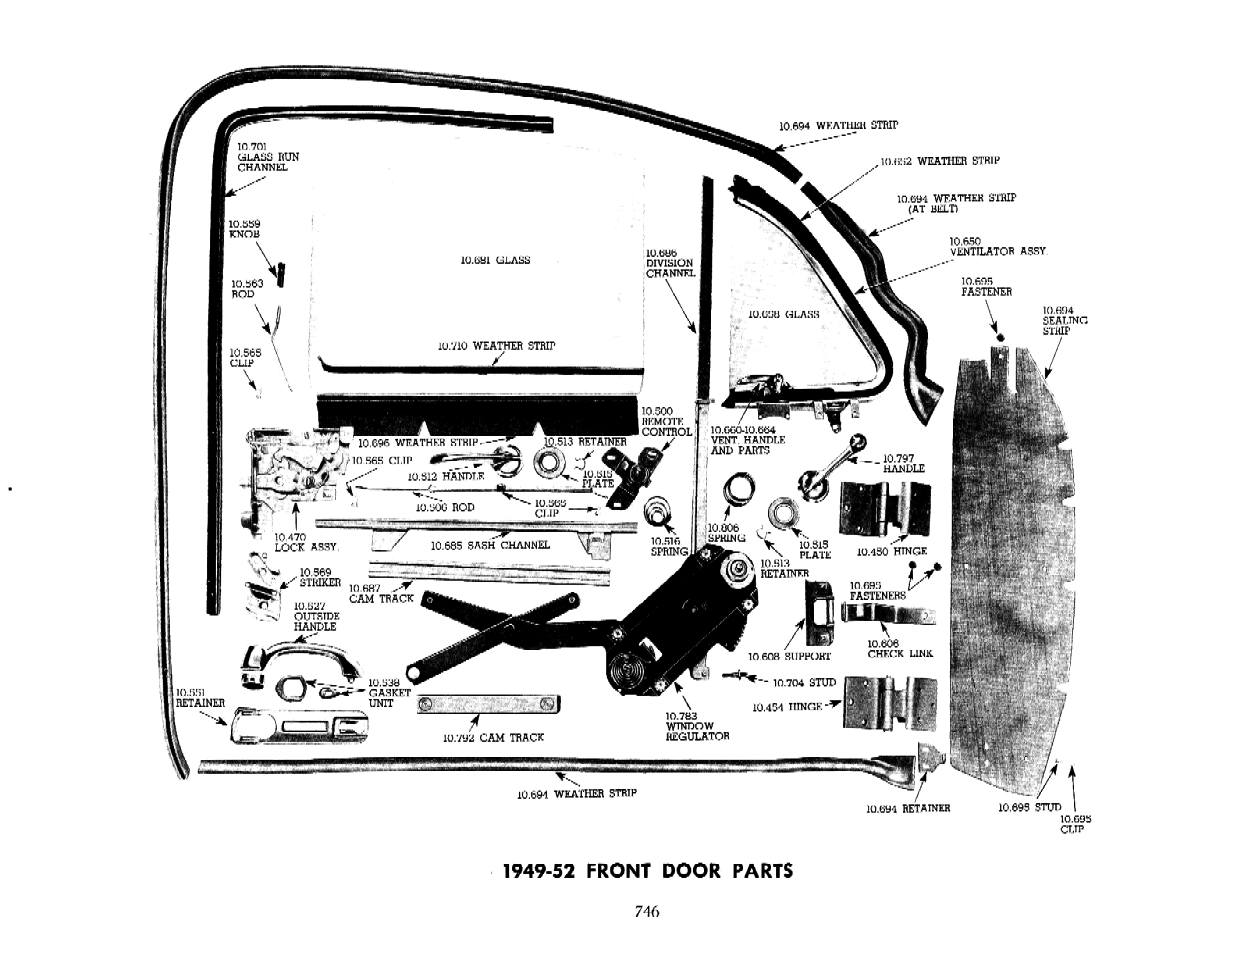 2000 Chevy Silverado Ignition Switch Wiring Diagram from static-resources.imageservice.cloud